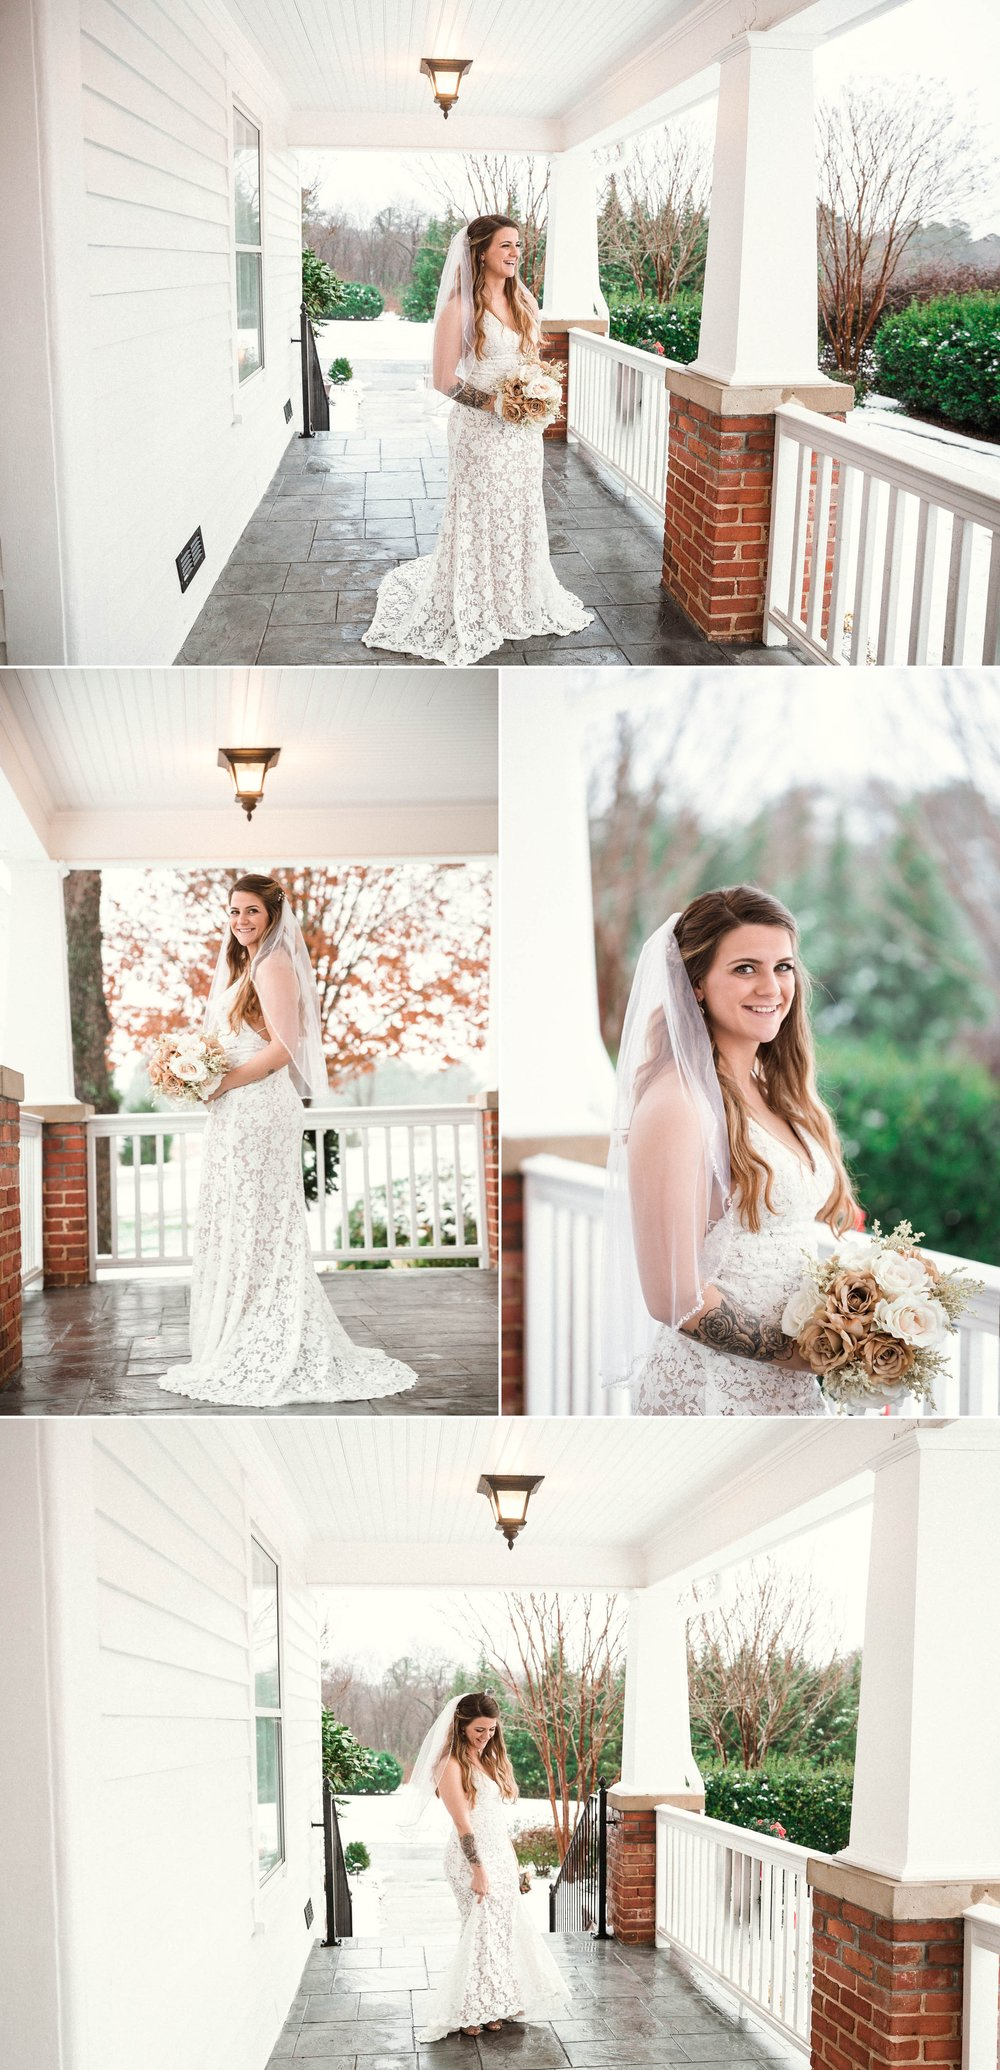 Bridal Portraits in the snow on the front porch - Jessica + Brandon - Snowy Winter Wedding at the Rand Bryan House in Garner, NC - Raleigh North Carolina Wedding Photographer